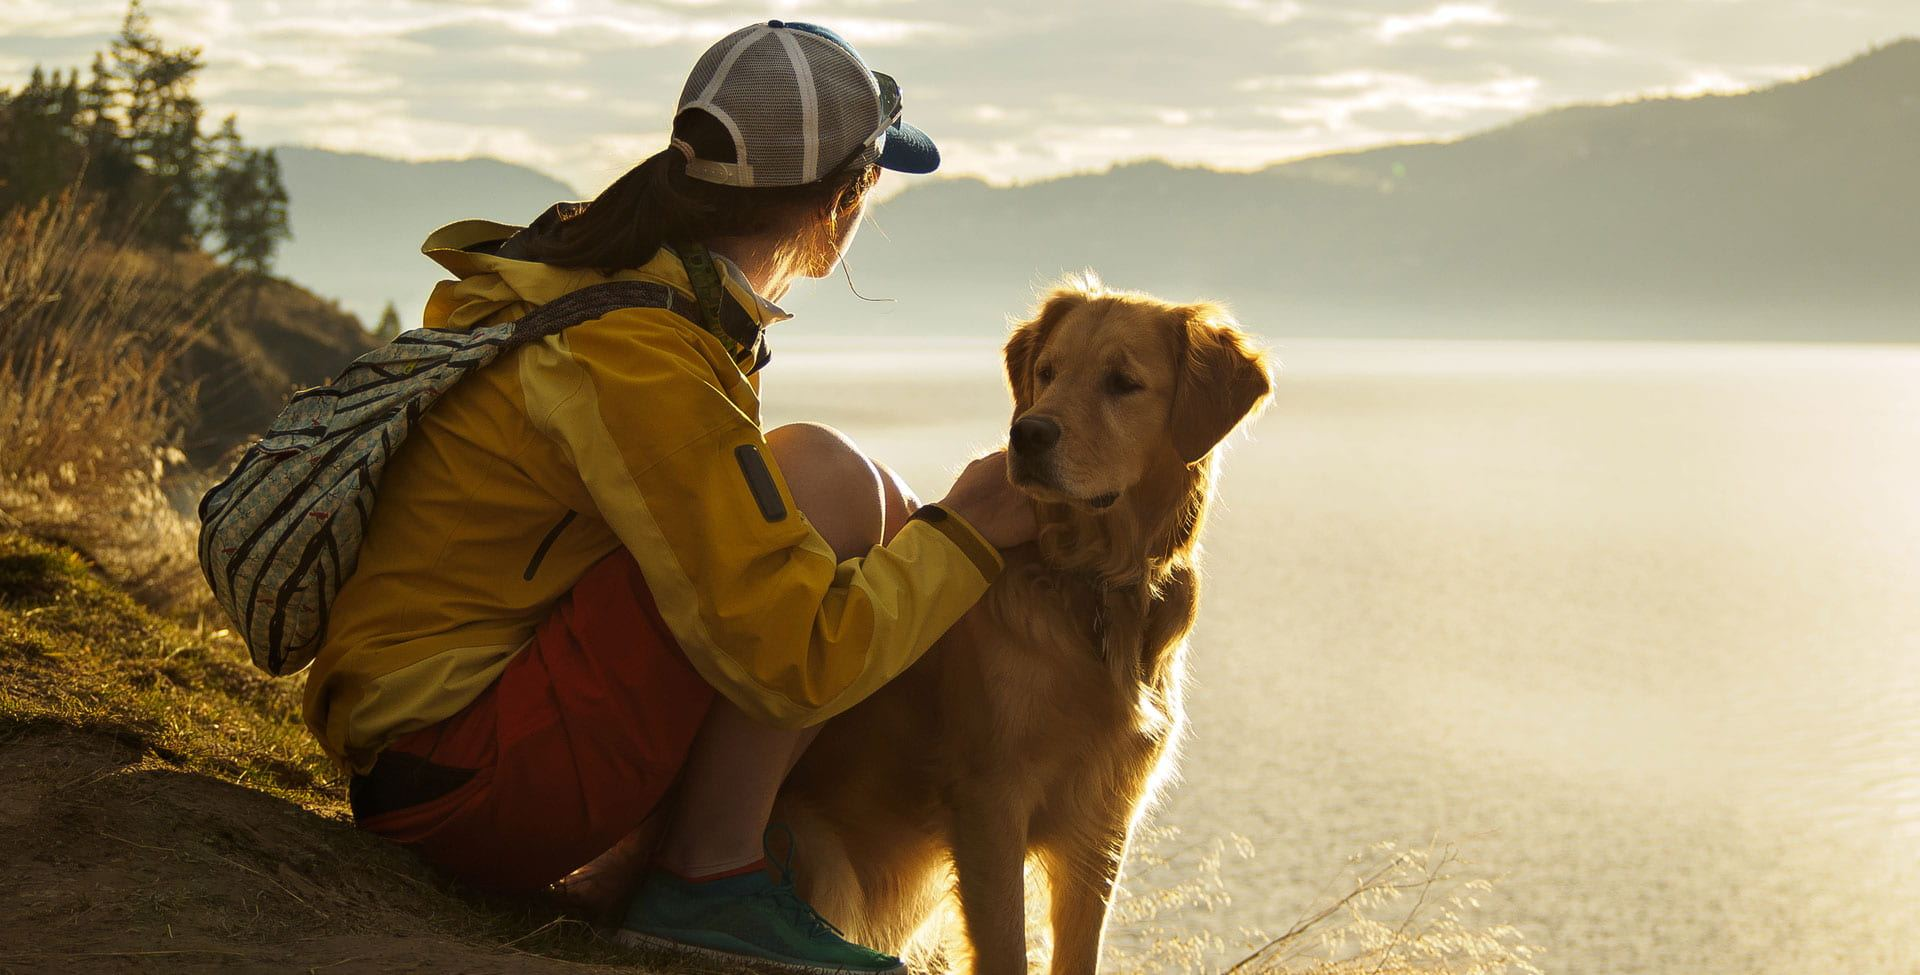 A young woman wearing a baseball cap, yellow jacket and red shorts looks out over a lake and mountains to the distance with her pet golden retriever by her side.